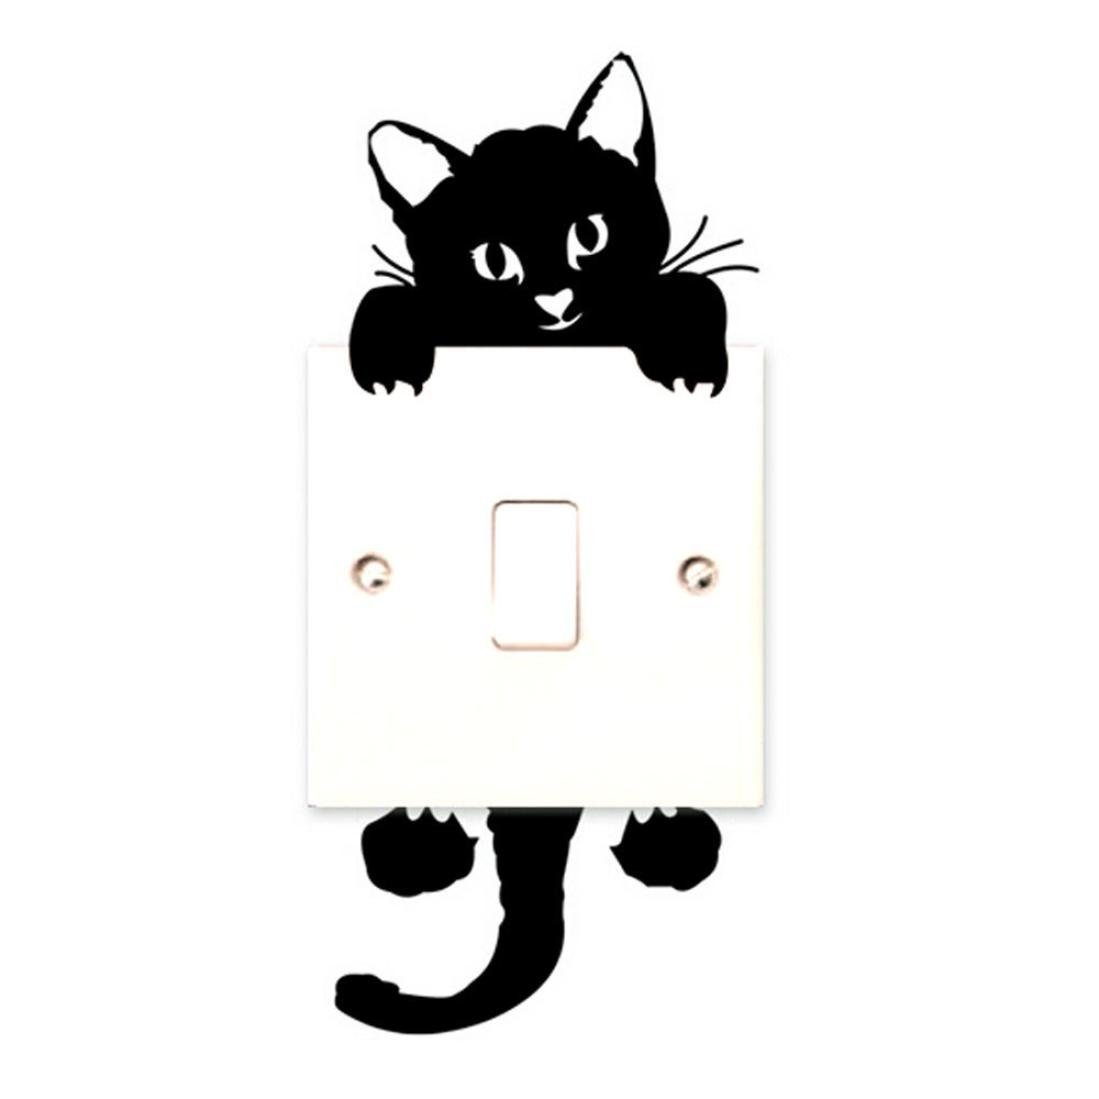 2018 Hot Sale**** Super Cute Wall Stickers//// New Fashion Light Switch Decor Decals Art Mural Baby Nursery Room (Black) Kavitoz